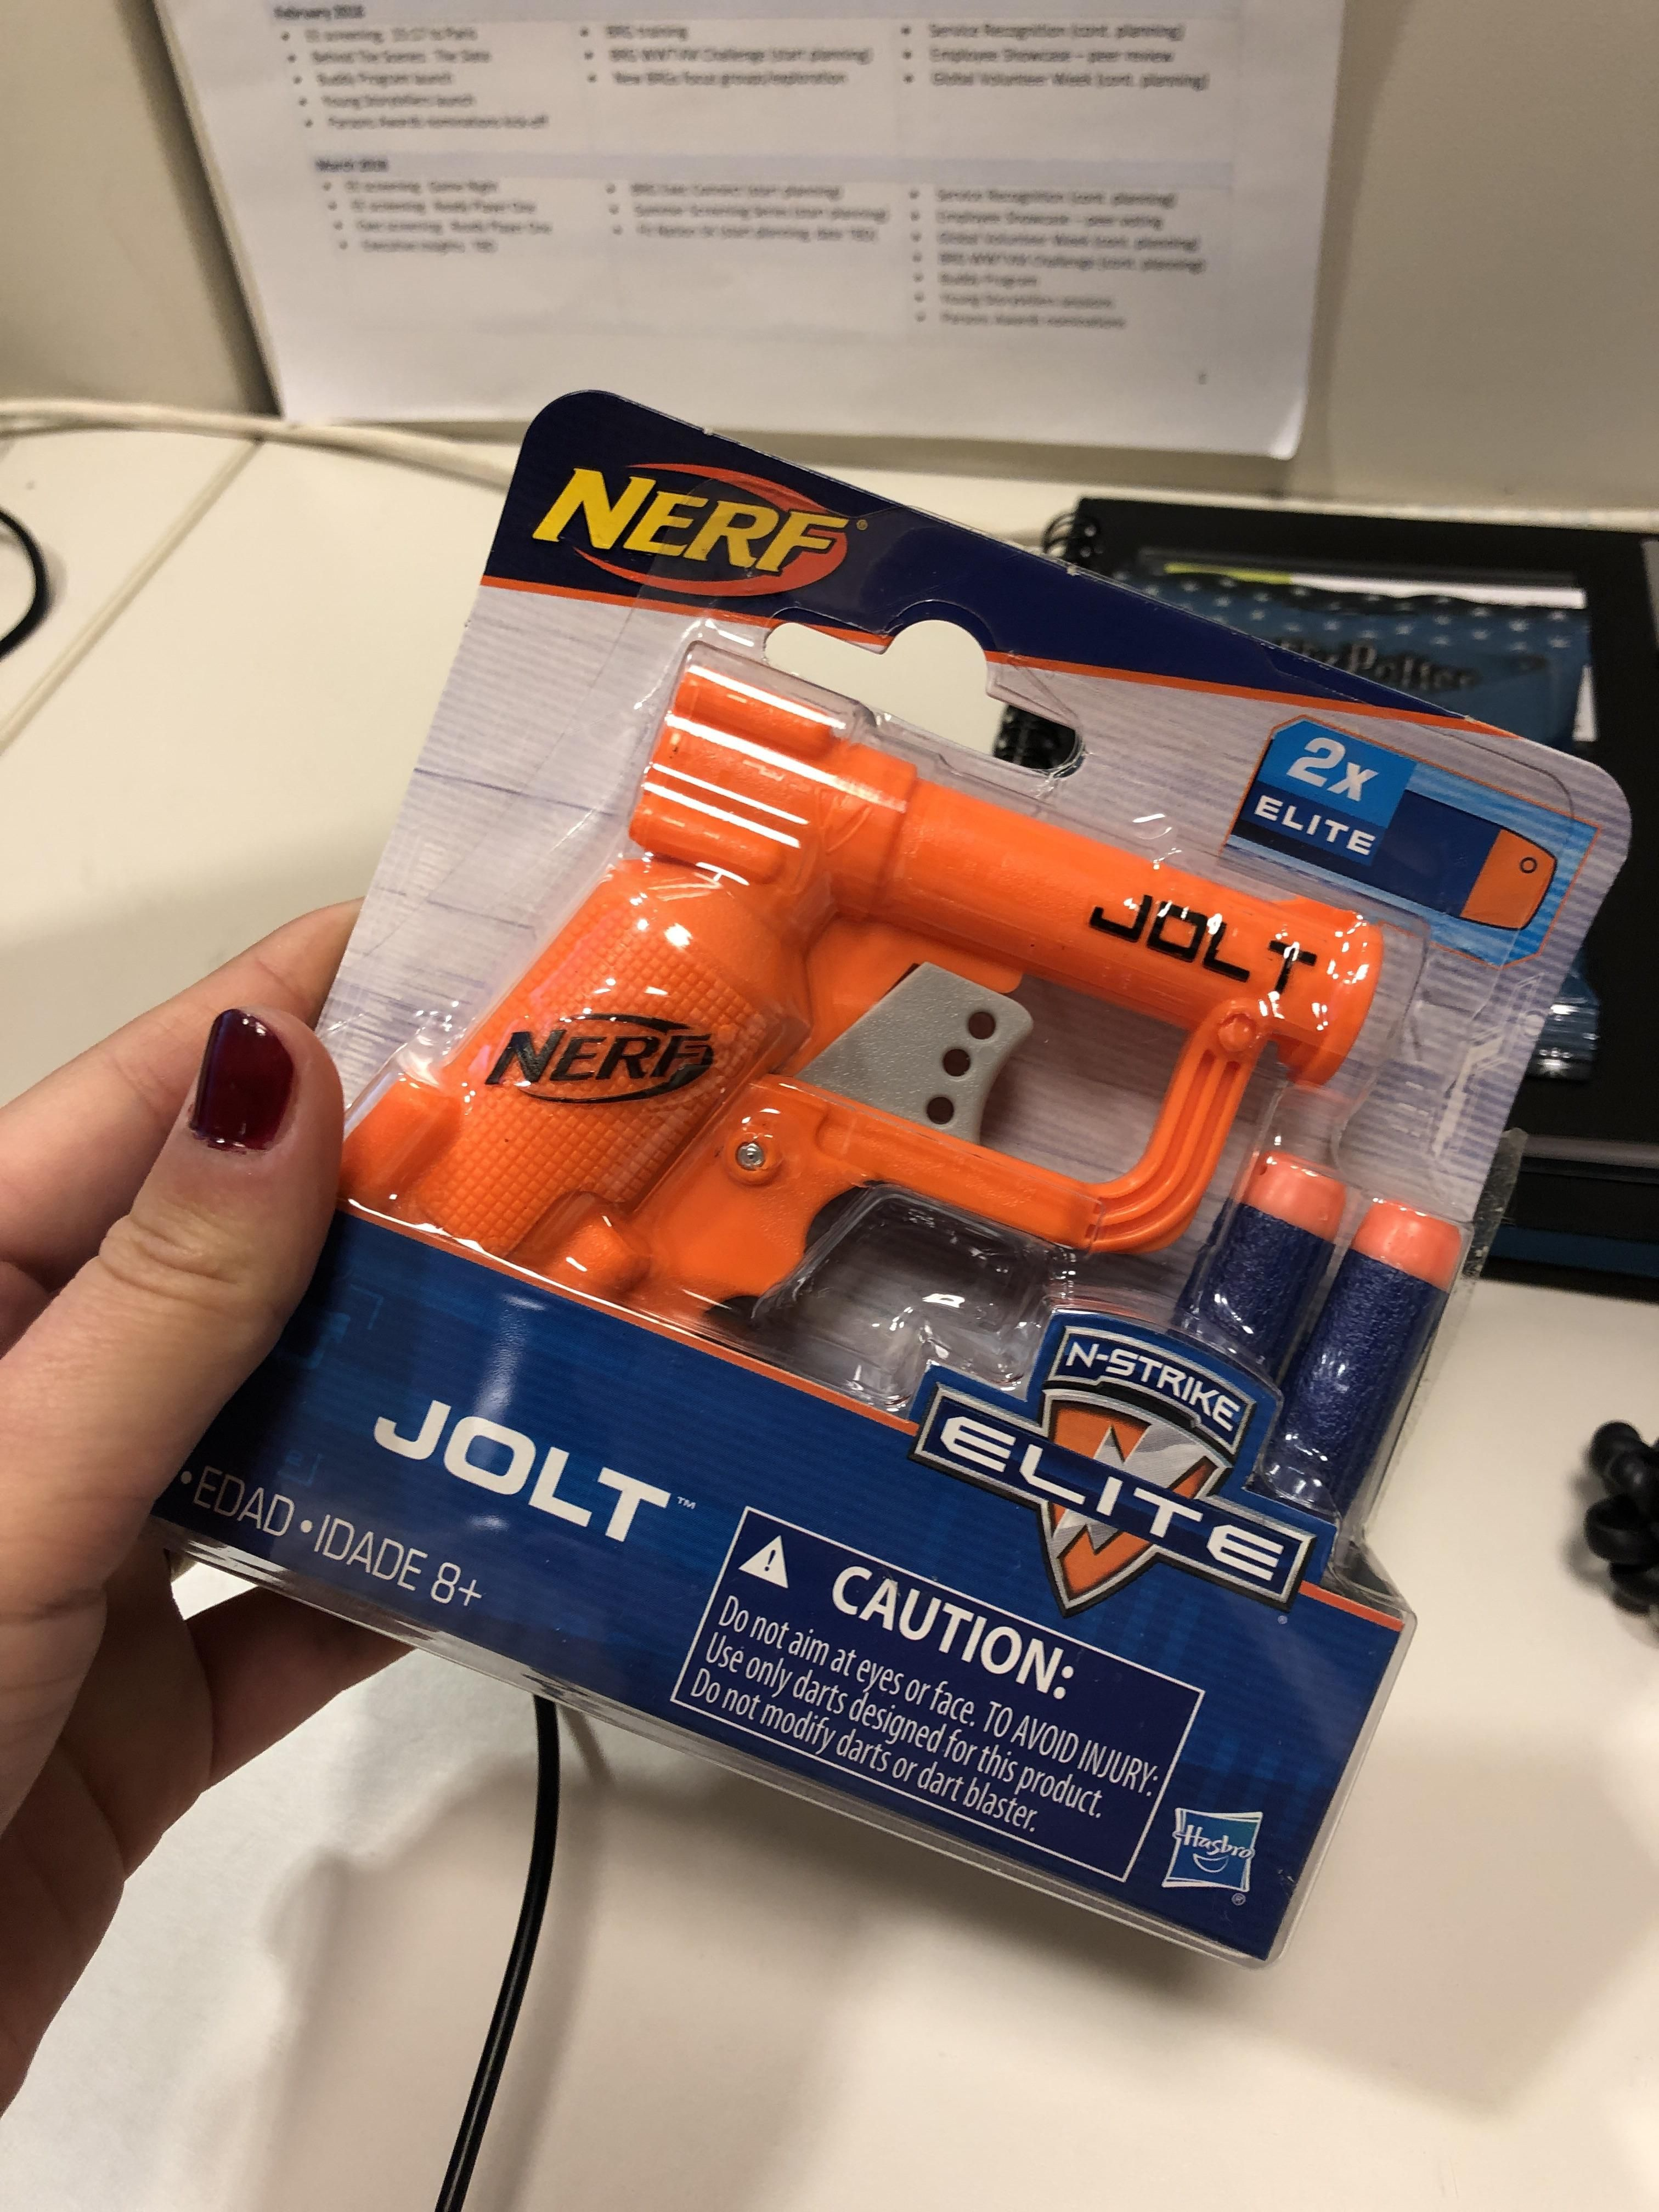 It's my first day of my new job and my boss gave me a nerf gun to shoot my co-workers with. I can tell I'm going to like it here.